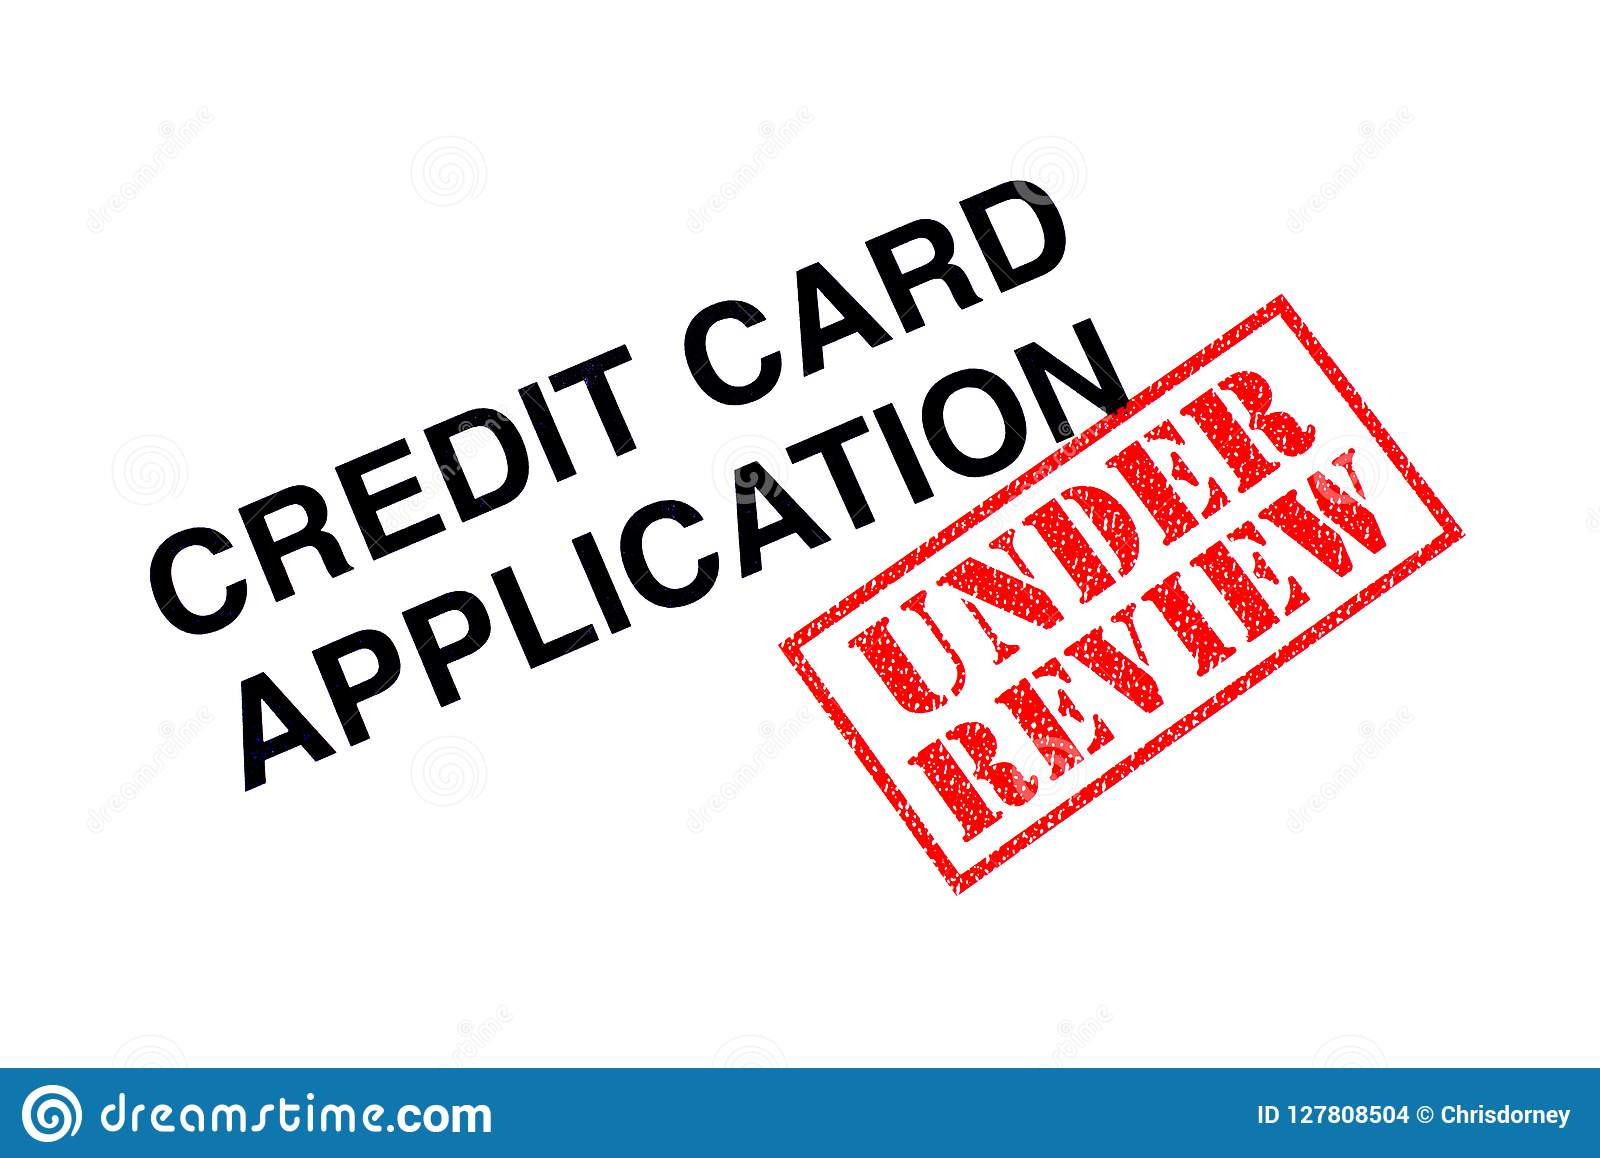 Credit Card Application Under Review Stock Photo - Image of